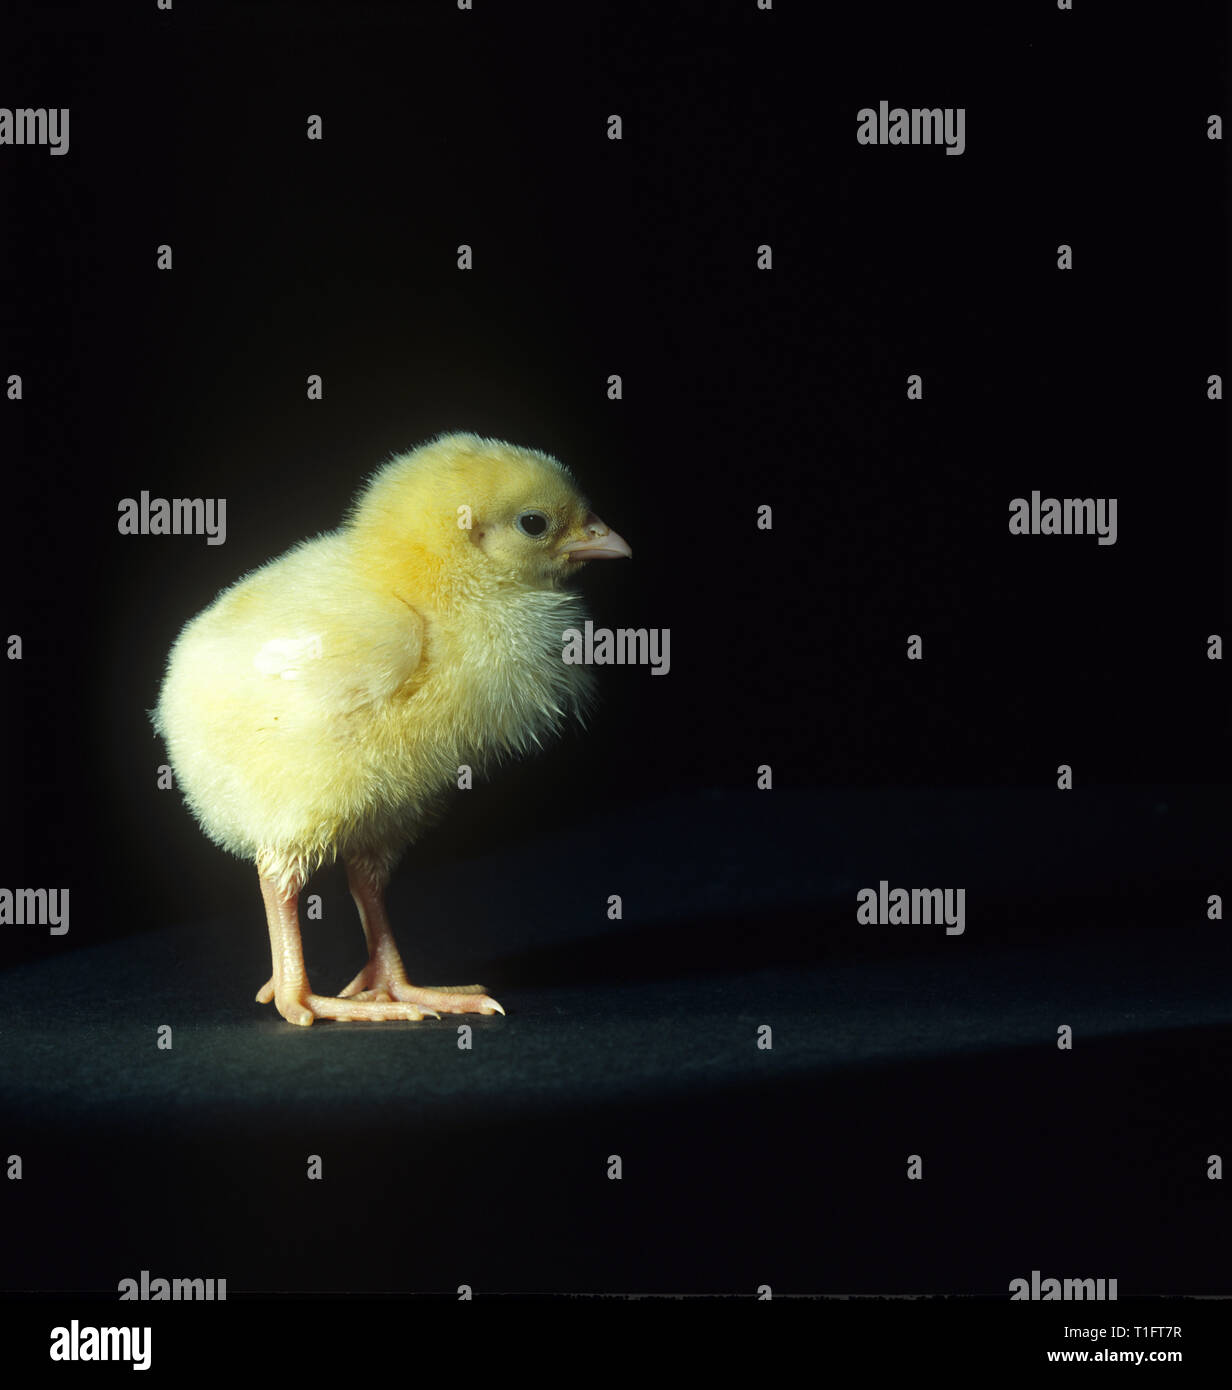 A 'day old' chick against a black background - Stock Image